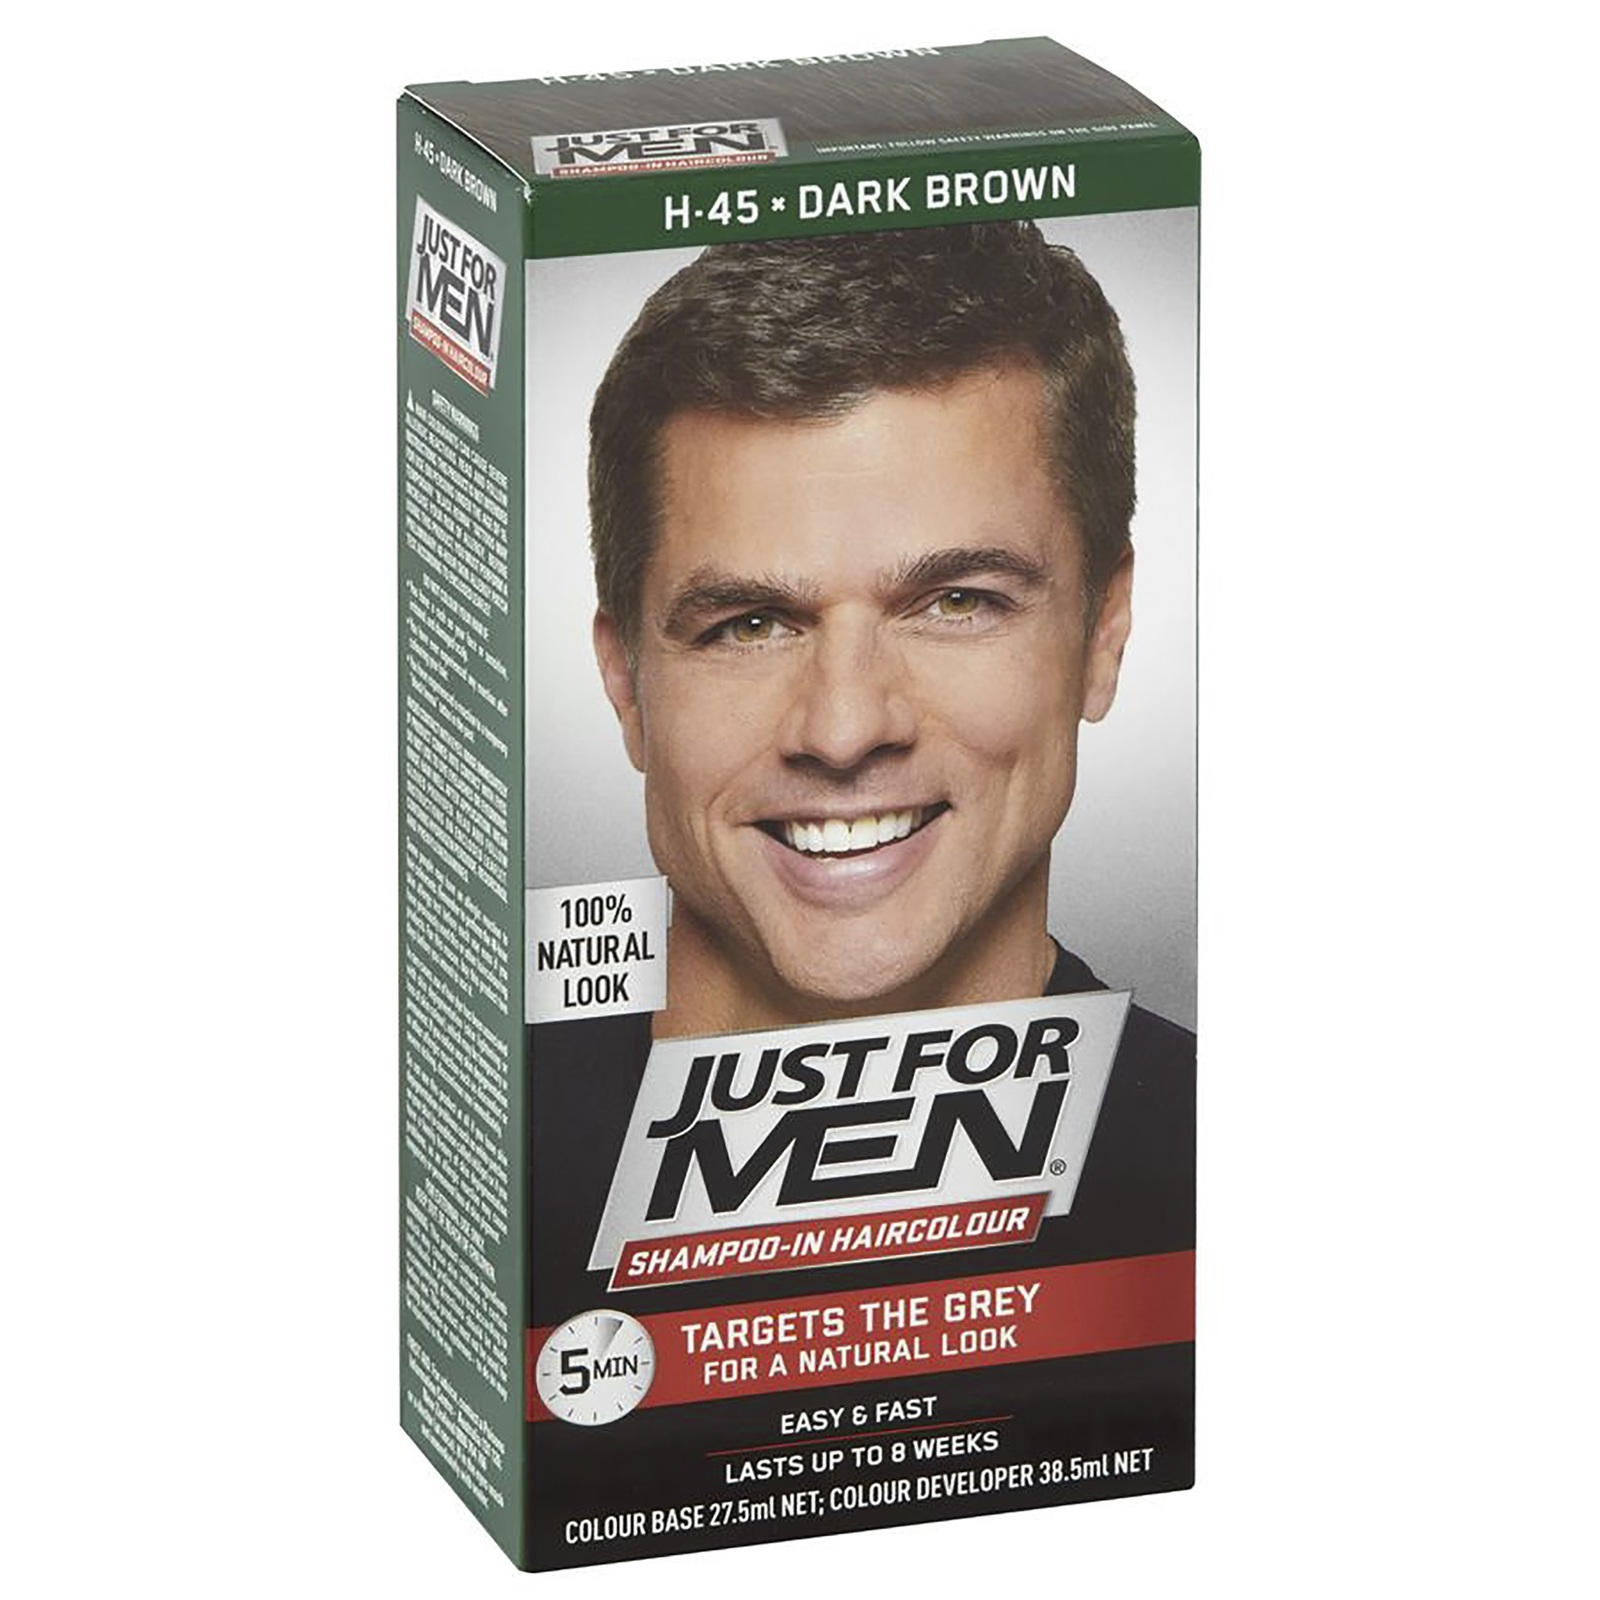 Just For Men Shampoo-In Hair Colour - Dark Brown image